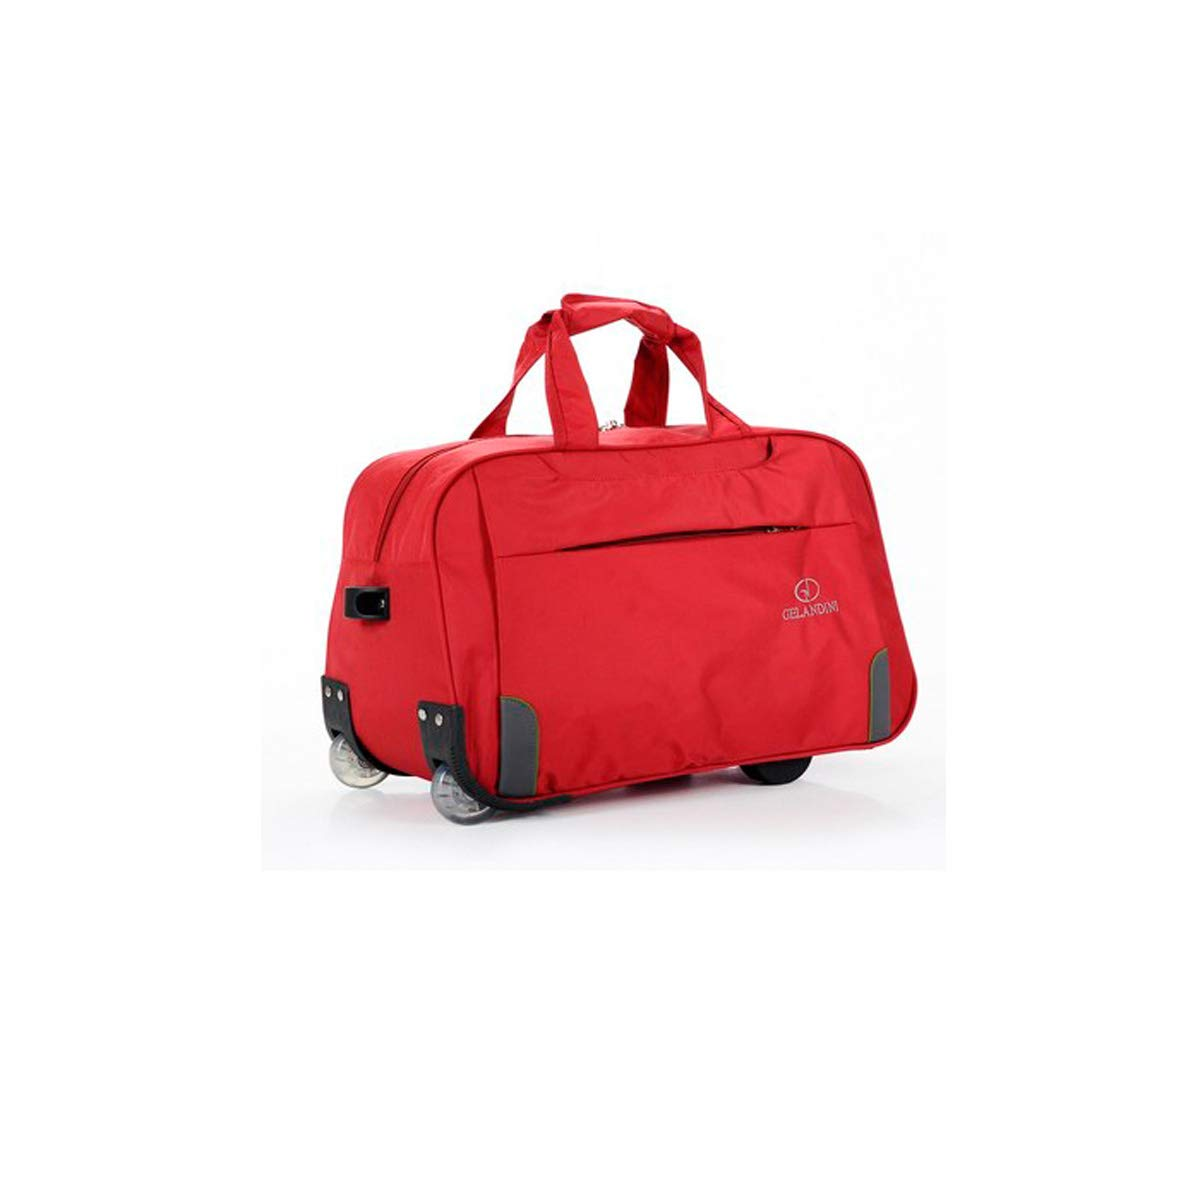 Simple Huijunwenti Trolley Case Red The Latest Style Travel Case Soft Bag Color : Red Travel Organizer Handbag 20 Inches